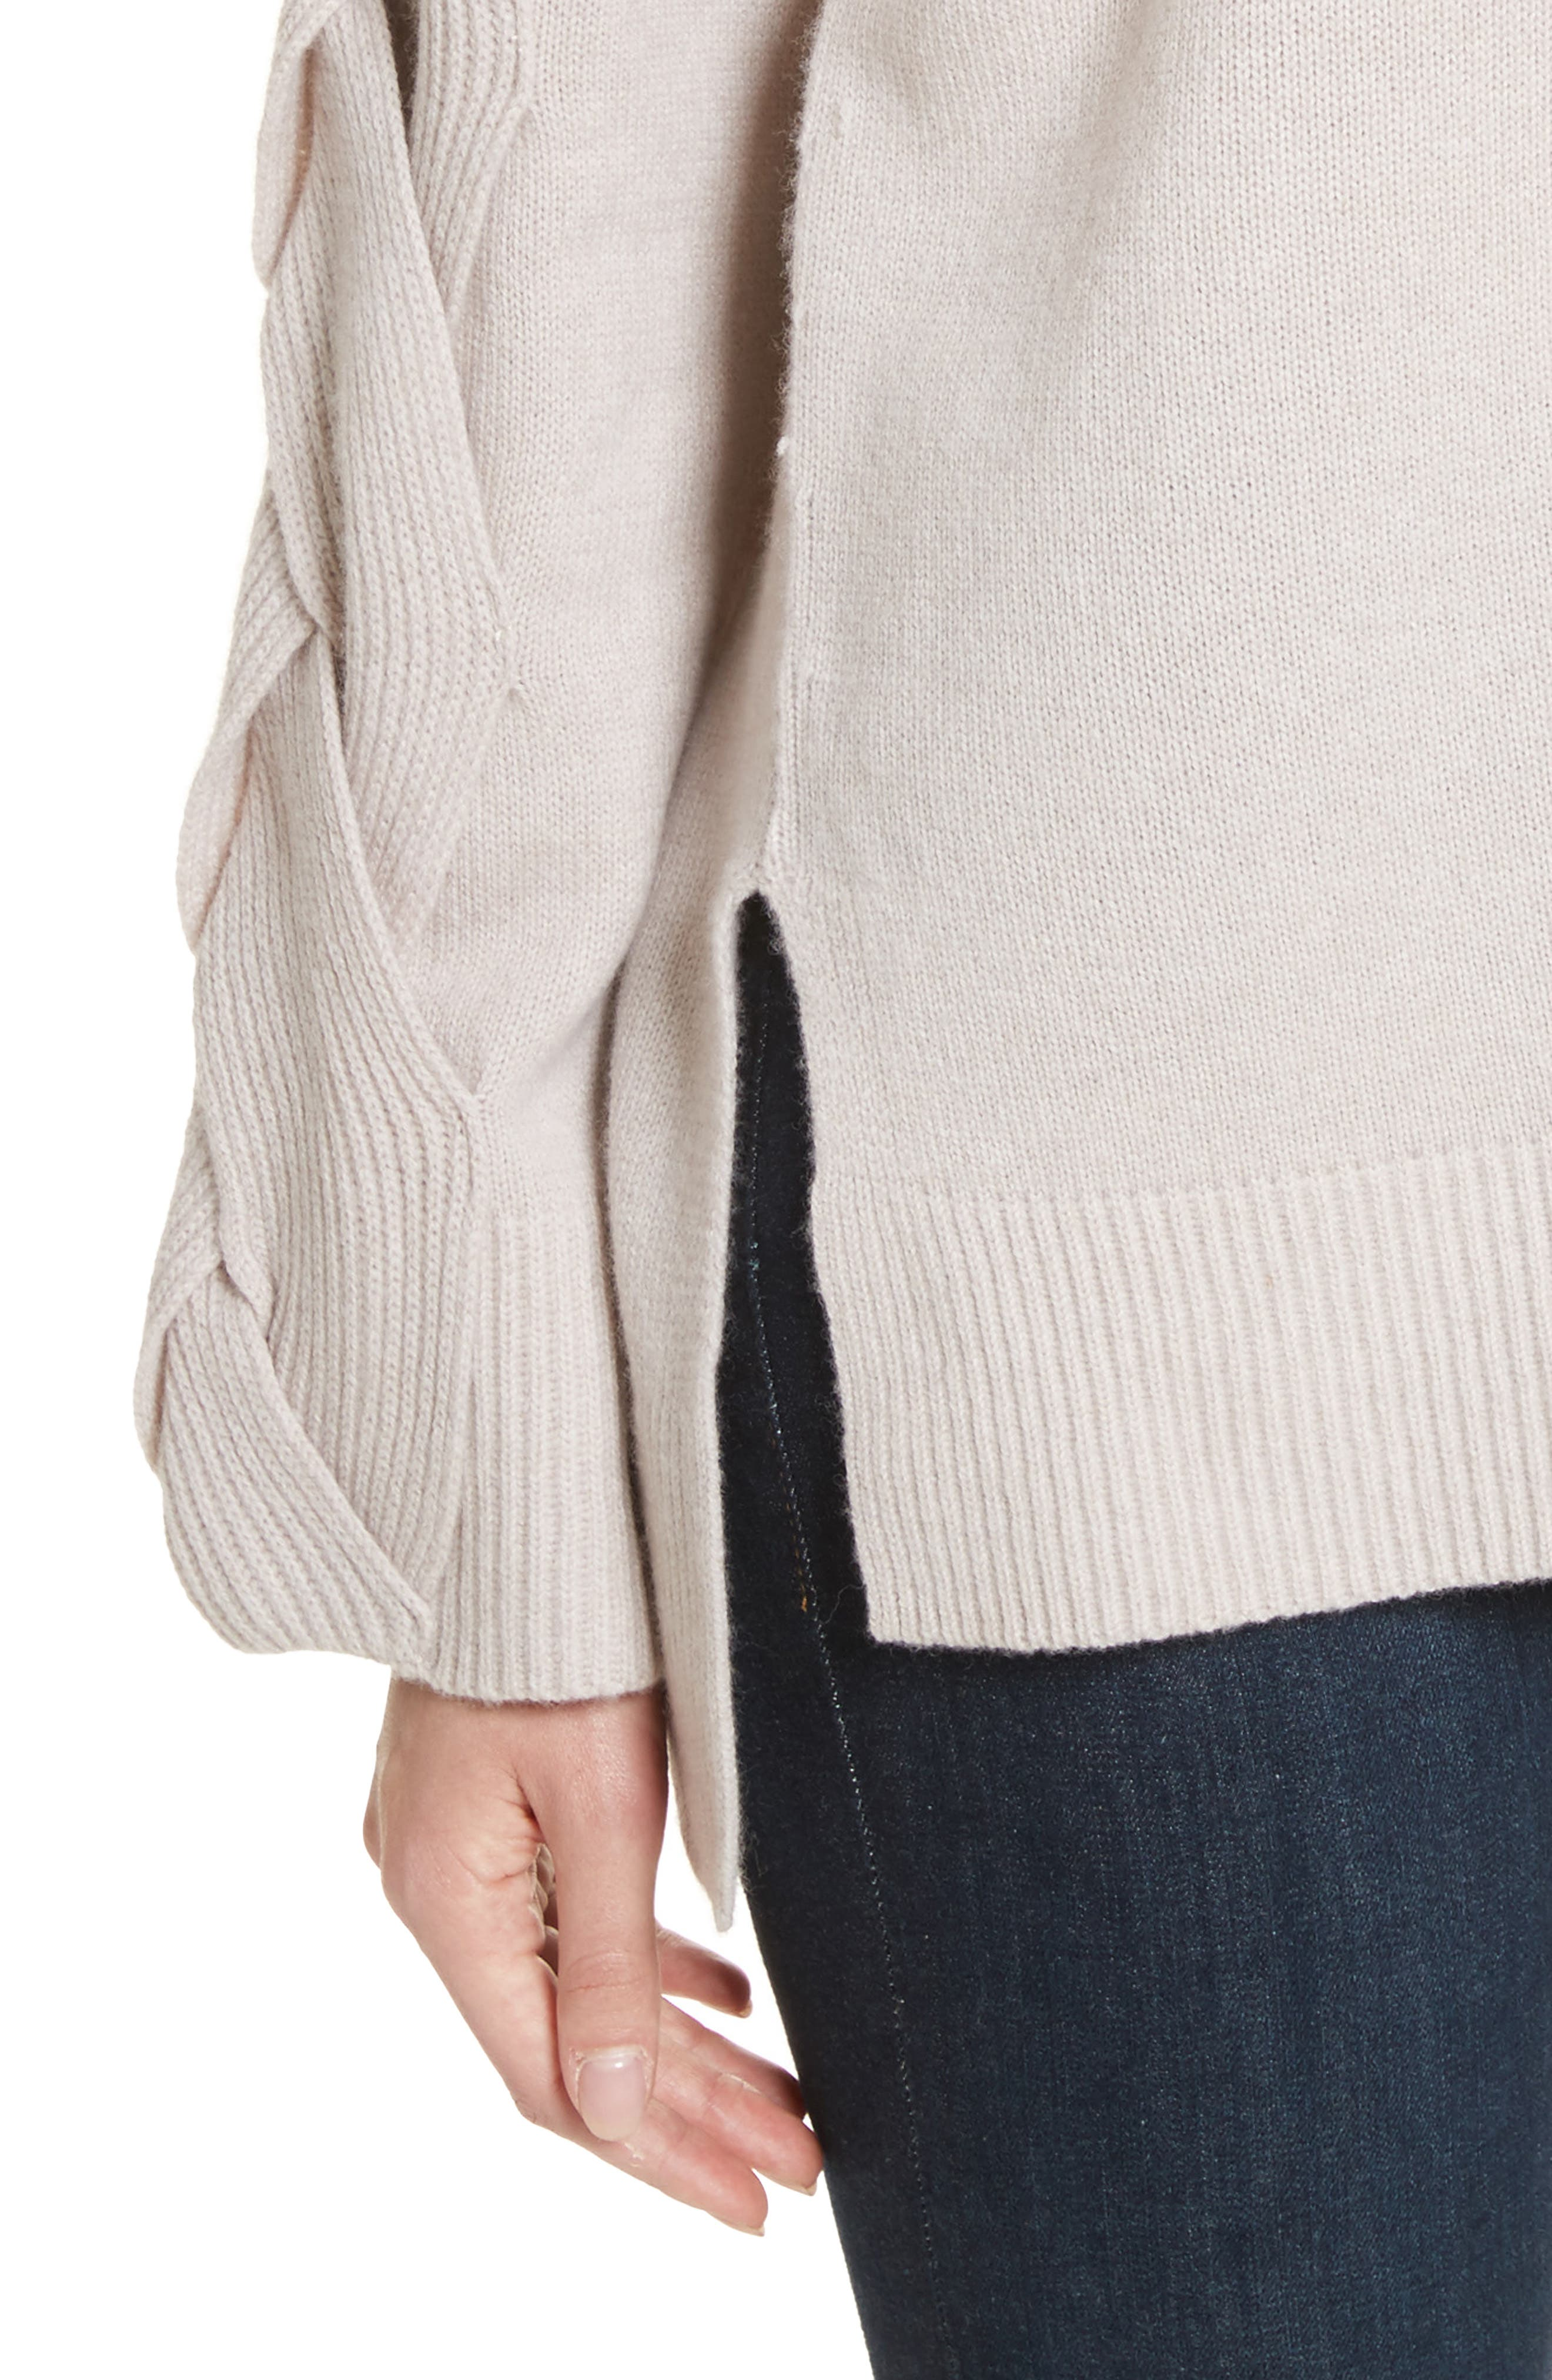 Fisherman Cable Knit Sweater,                             Alternate thumbnail 4, color,                             Oatmeal